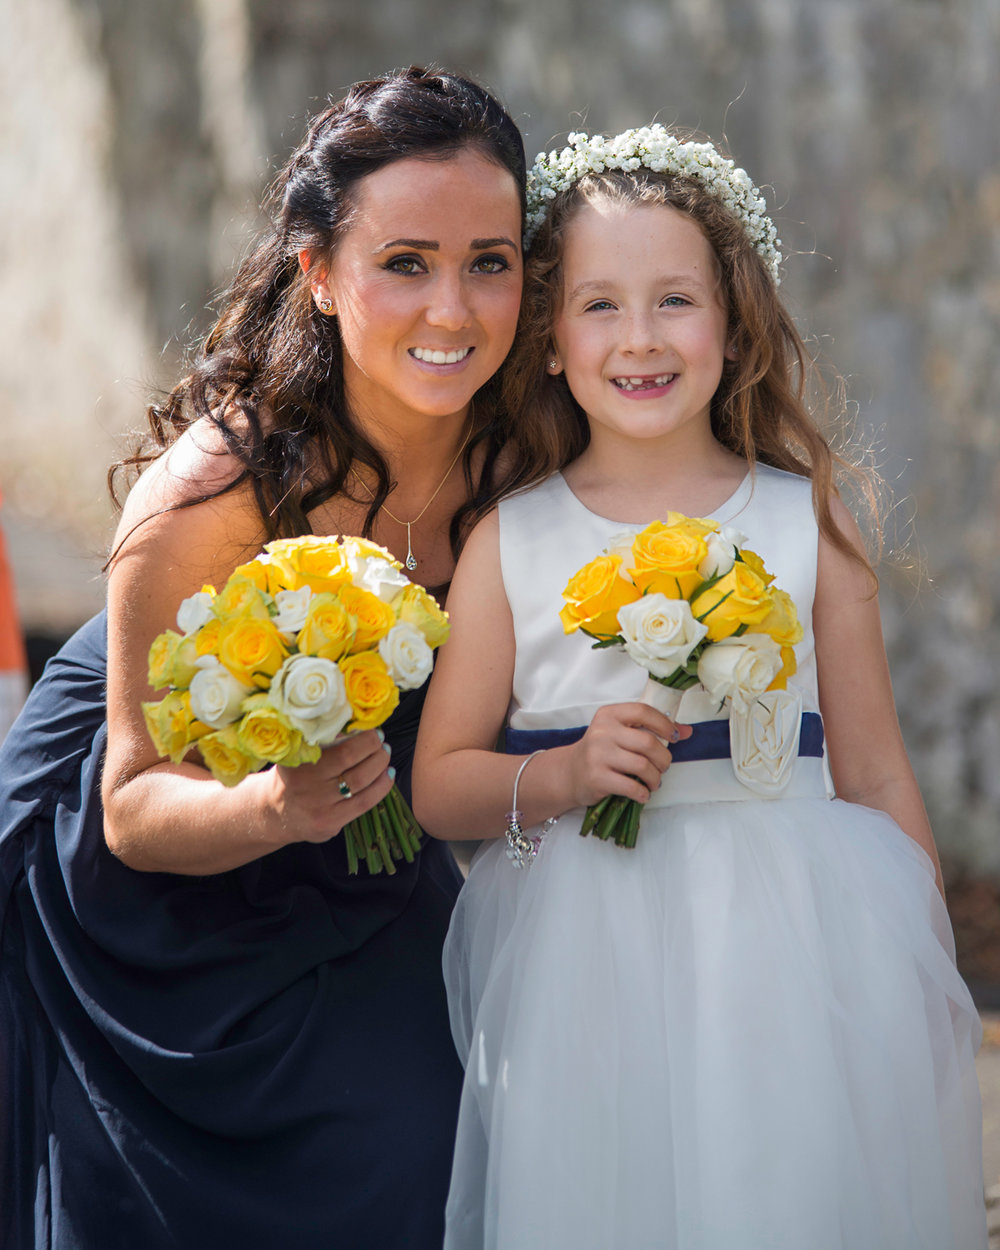 MOH and flower girl wedding day | St Cynfran